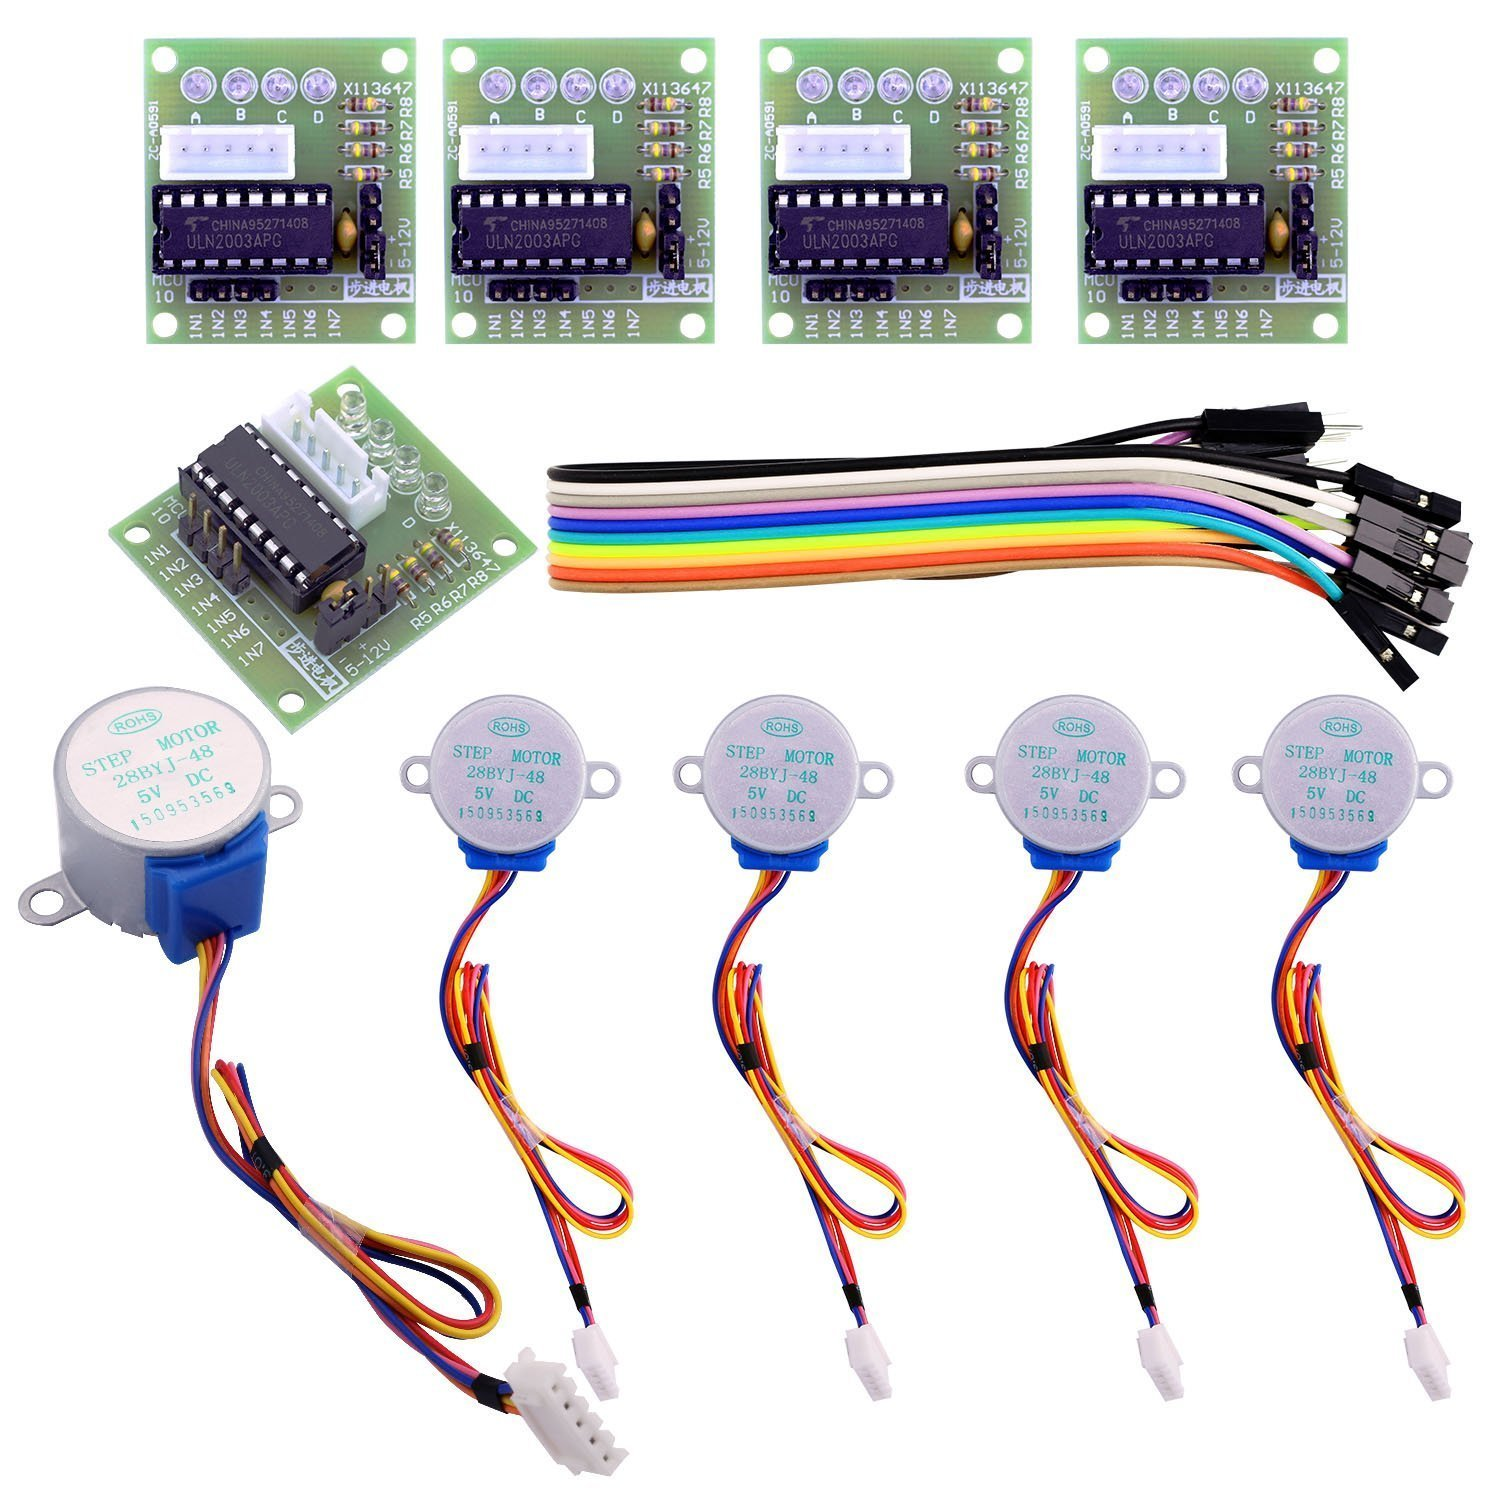 Robotlinking 5 Sets 28BYJ-48 ULN2003 5V Stepper Motor + ULN2003 Driver Board for Arduino With BoxRobotlinking 5 Sets 28BYJ-48 ULN2003 5V Stepper Motor + ULN2003 Driver Board for Arduino With Box